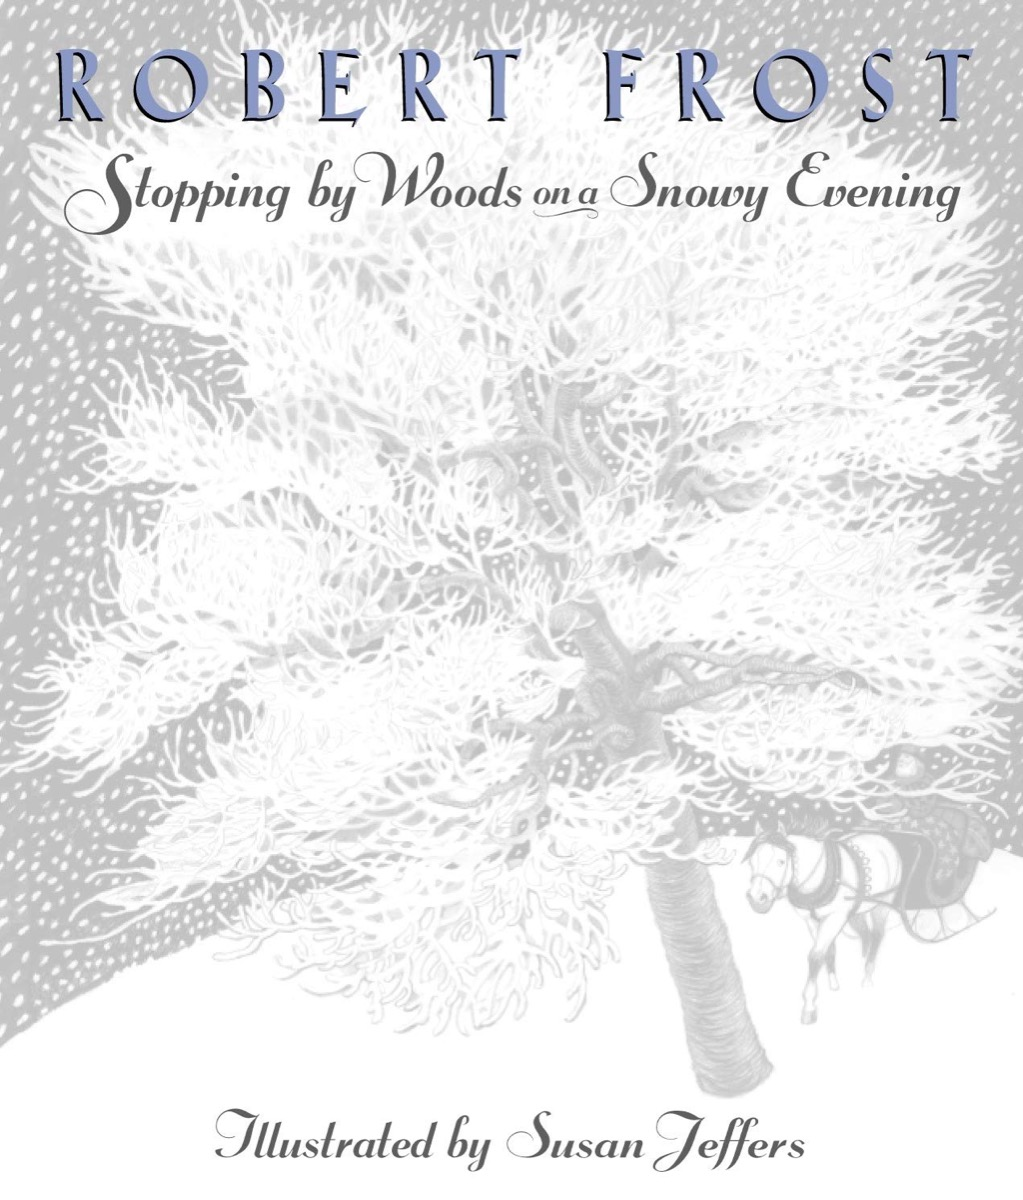 """Book cover of """"Stopping by Wood on a Snowy Evening"""" by Robert Frost"""